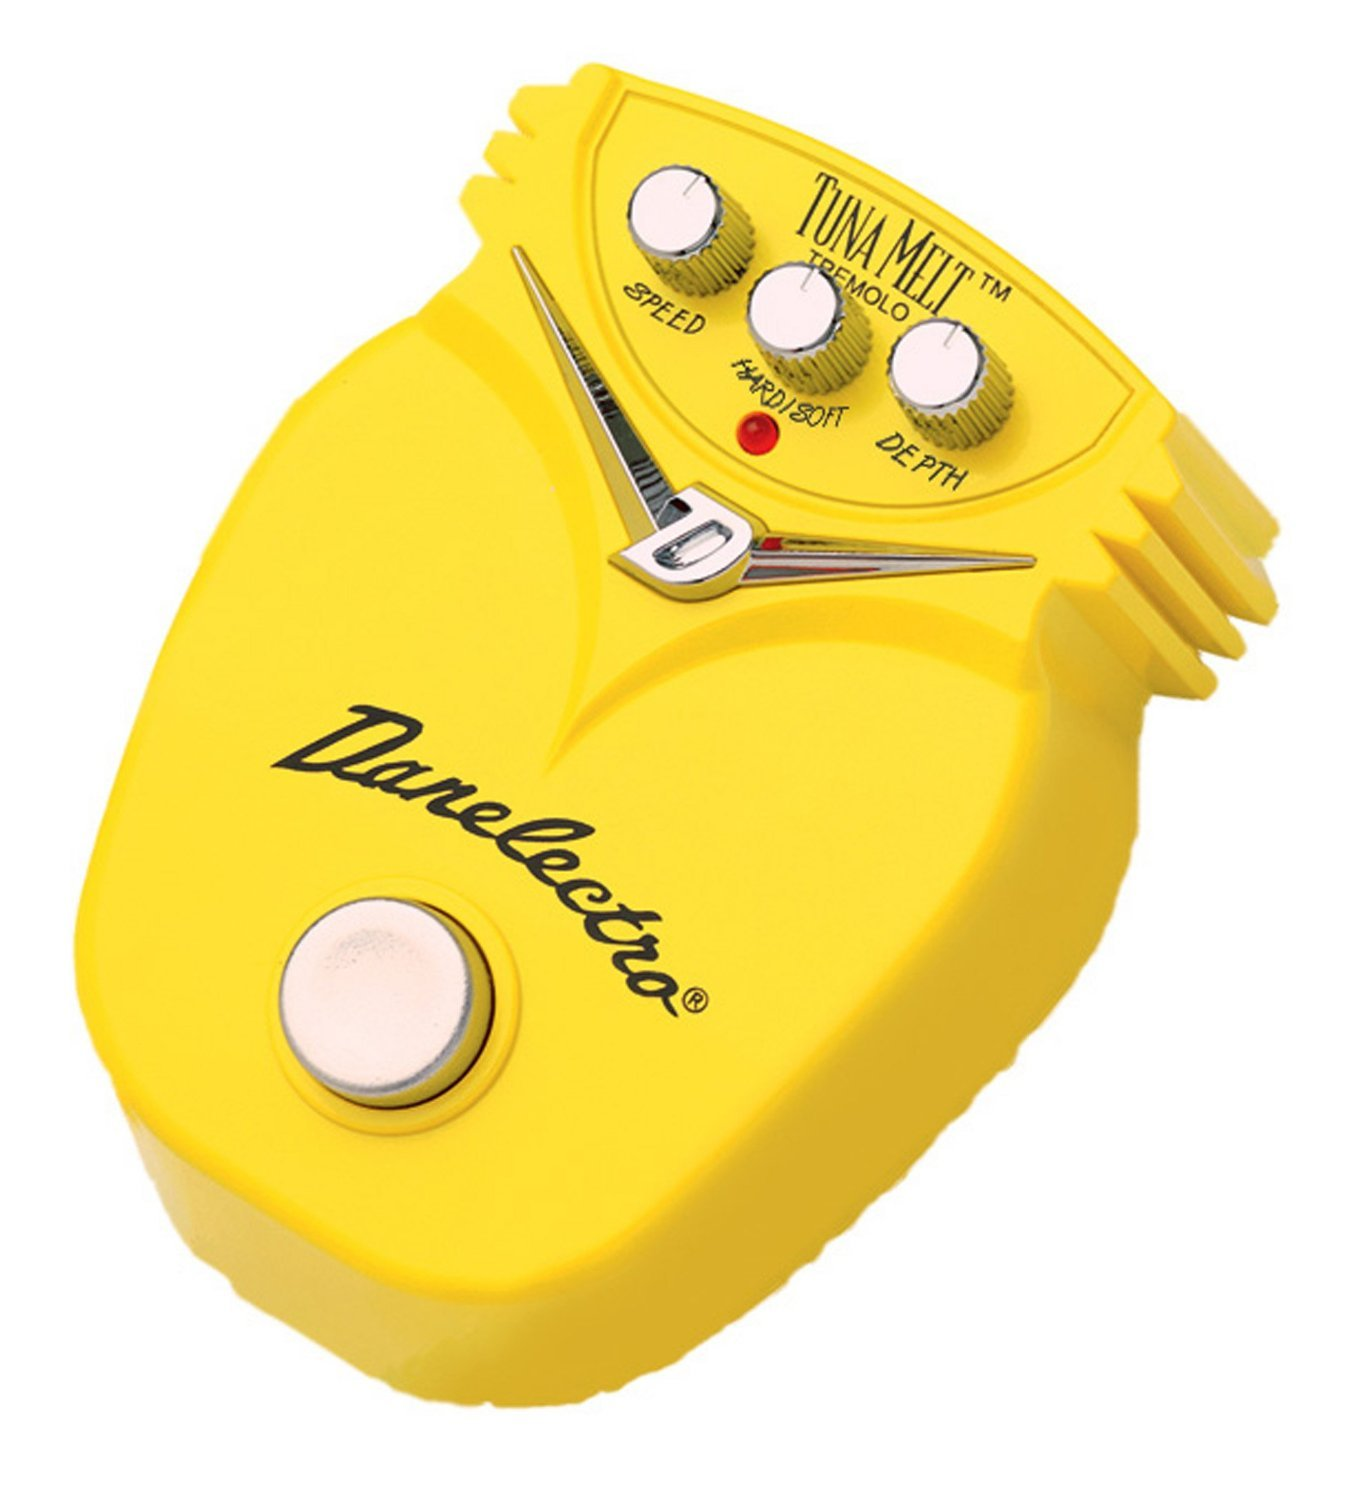 Danelectro DJ-5C Tuna Melt Tremolo Mini Effects Pedal Evets Cororation